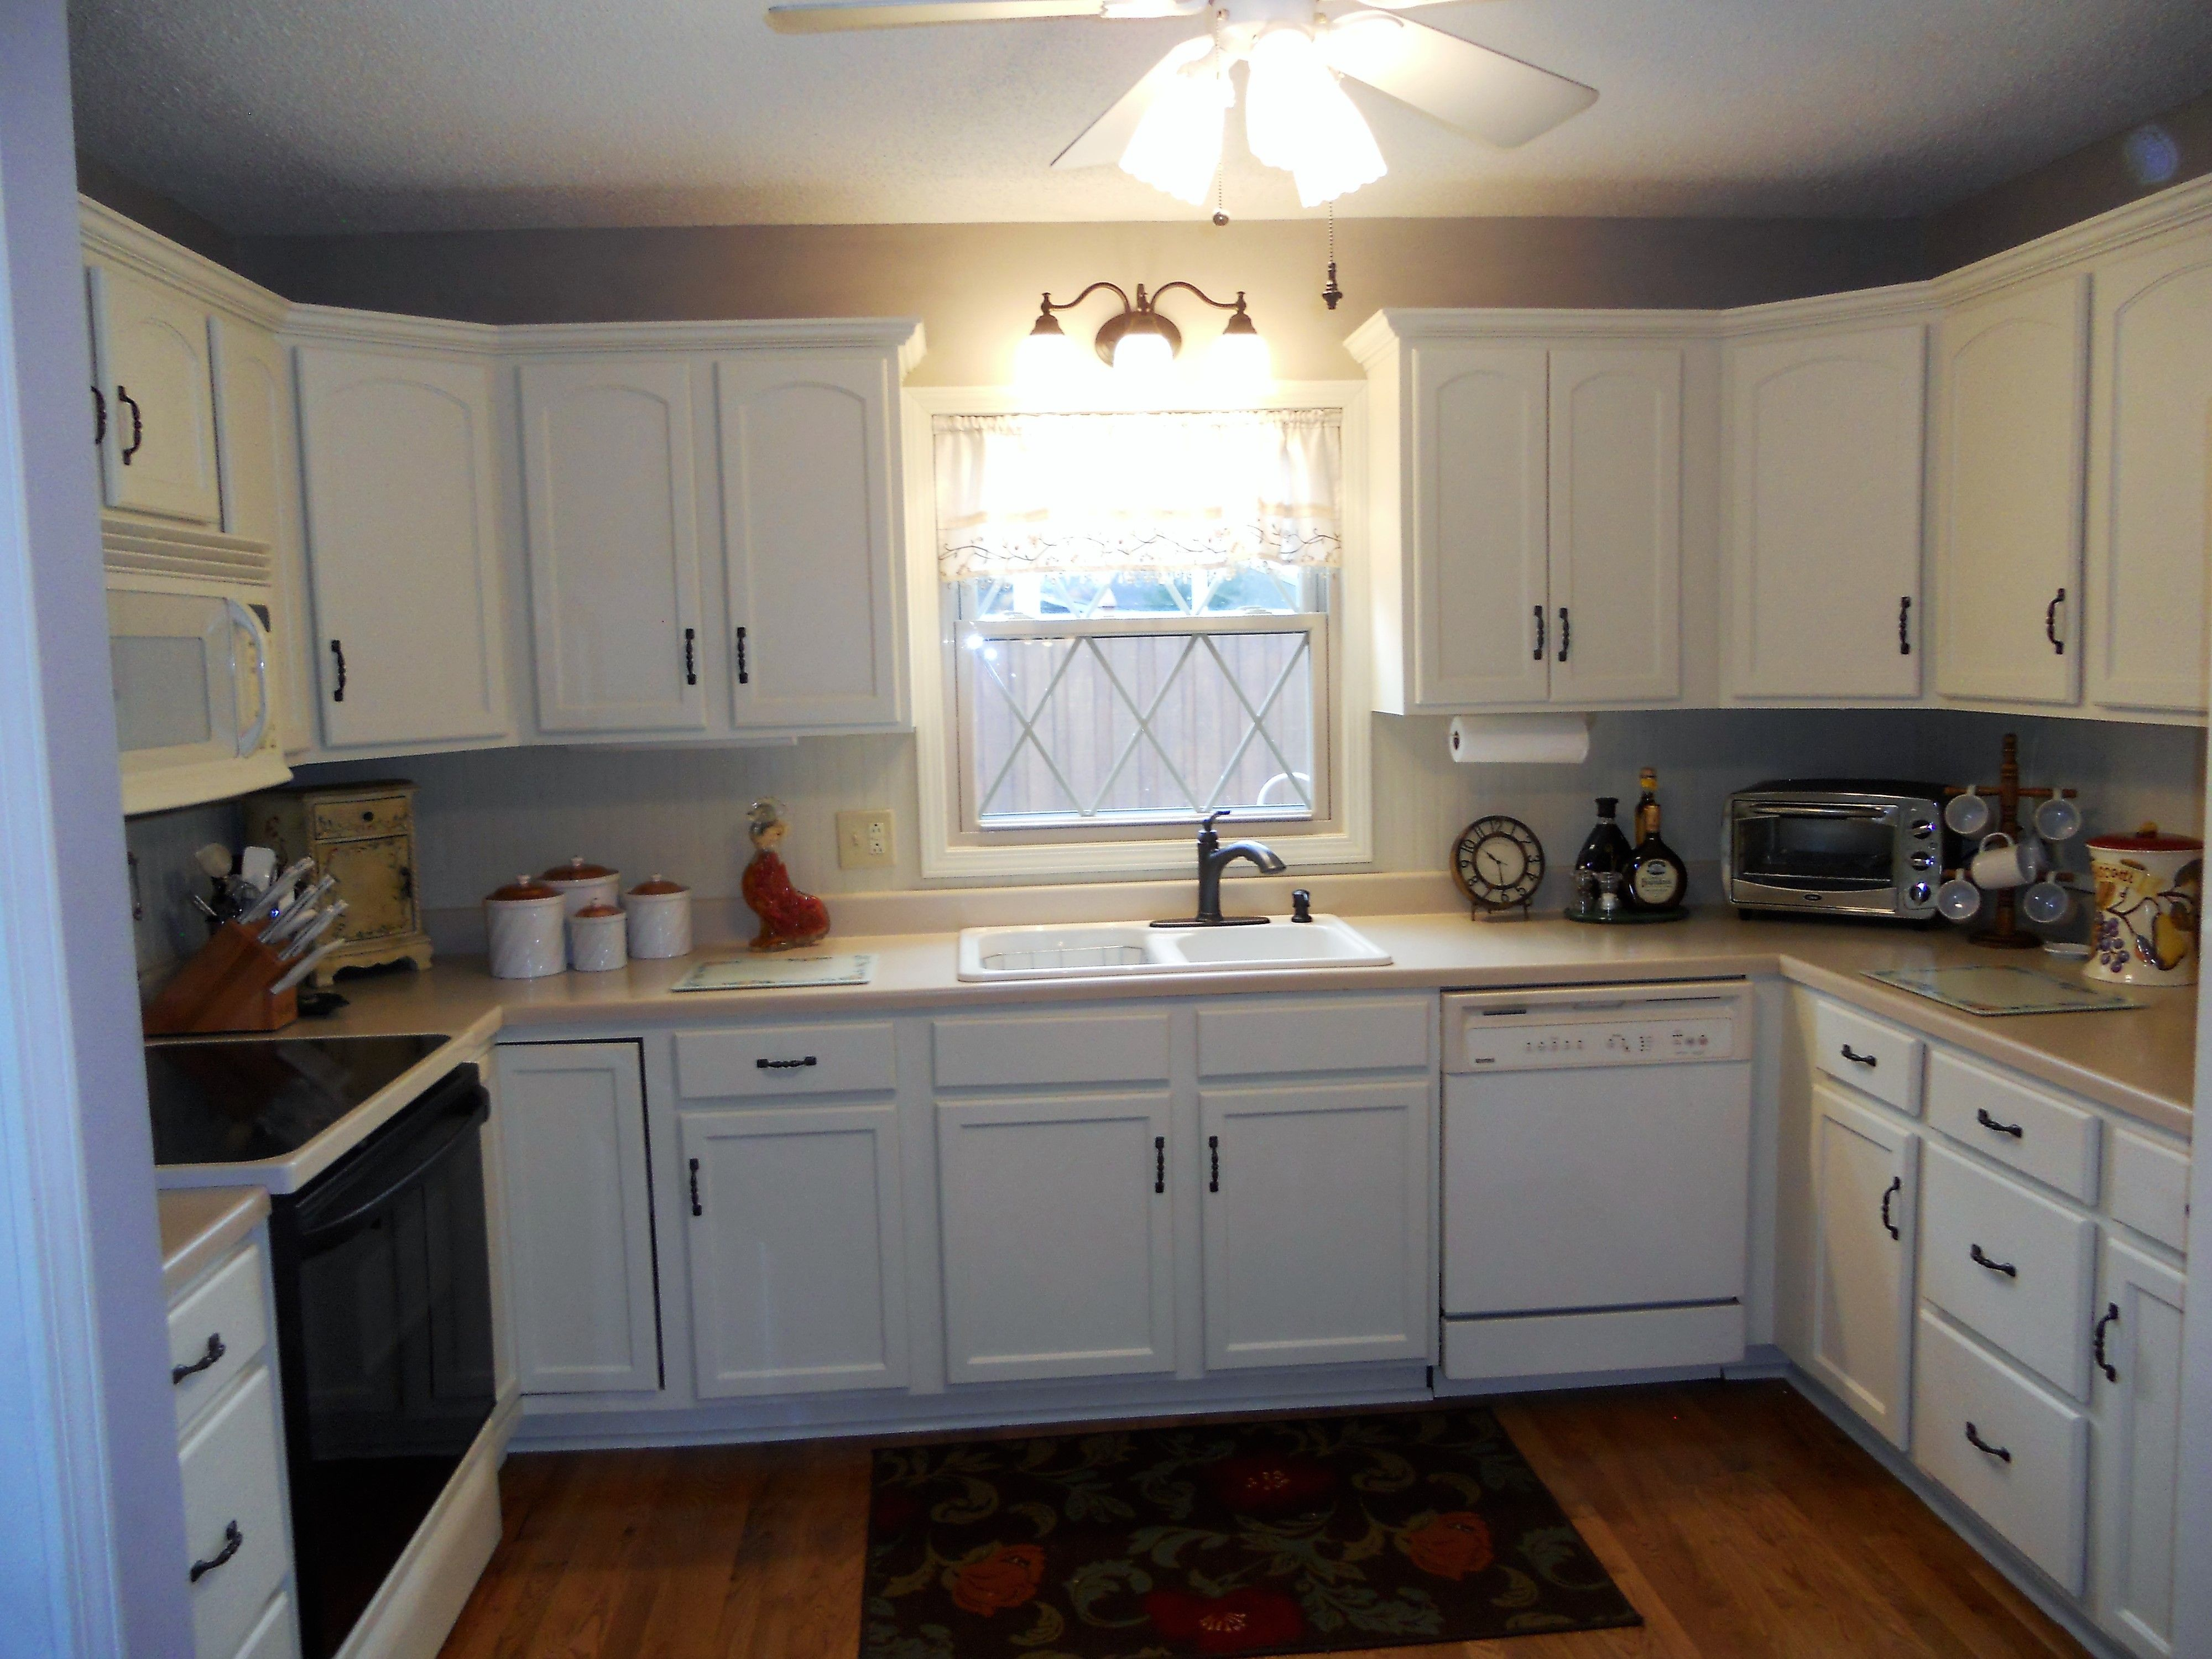 Fascinasting Kitchen Cabinets 2016 Antique White Painted ...